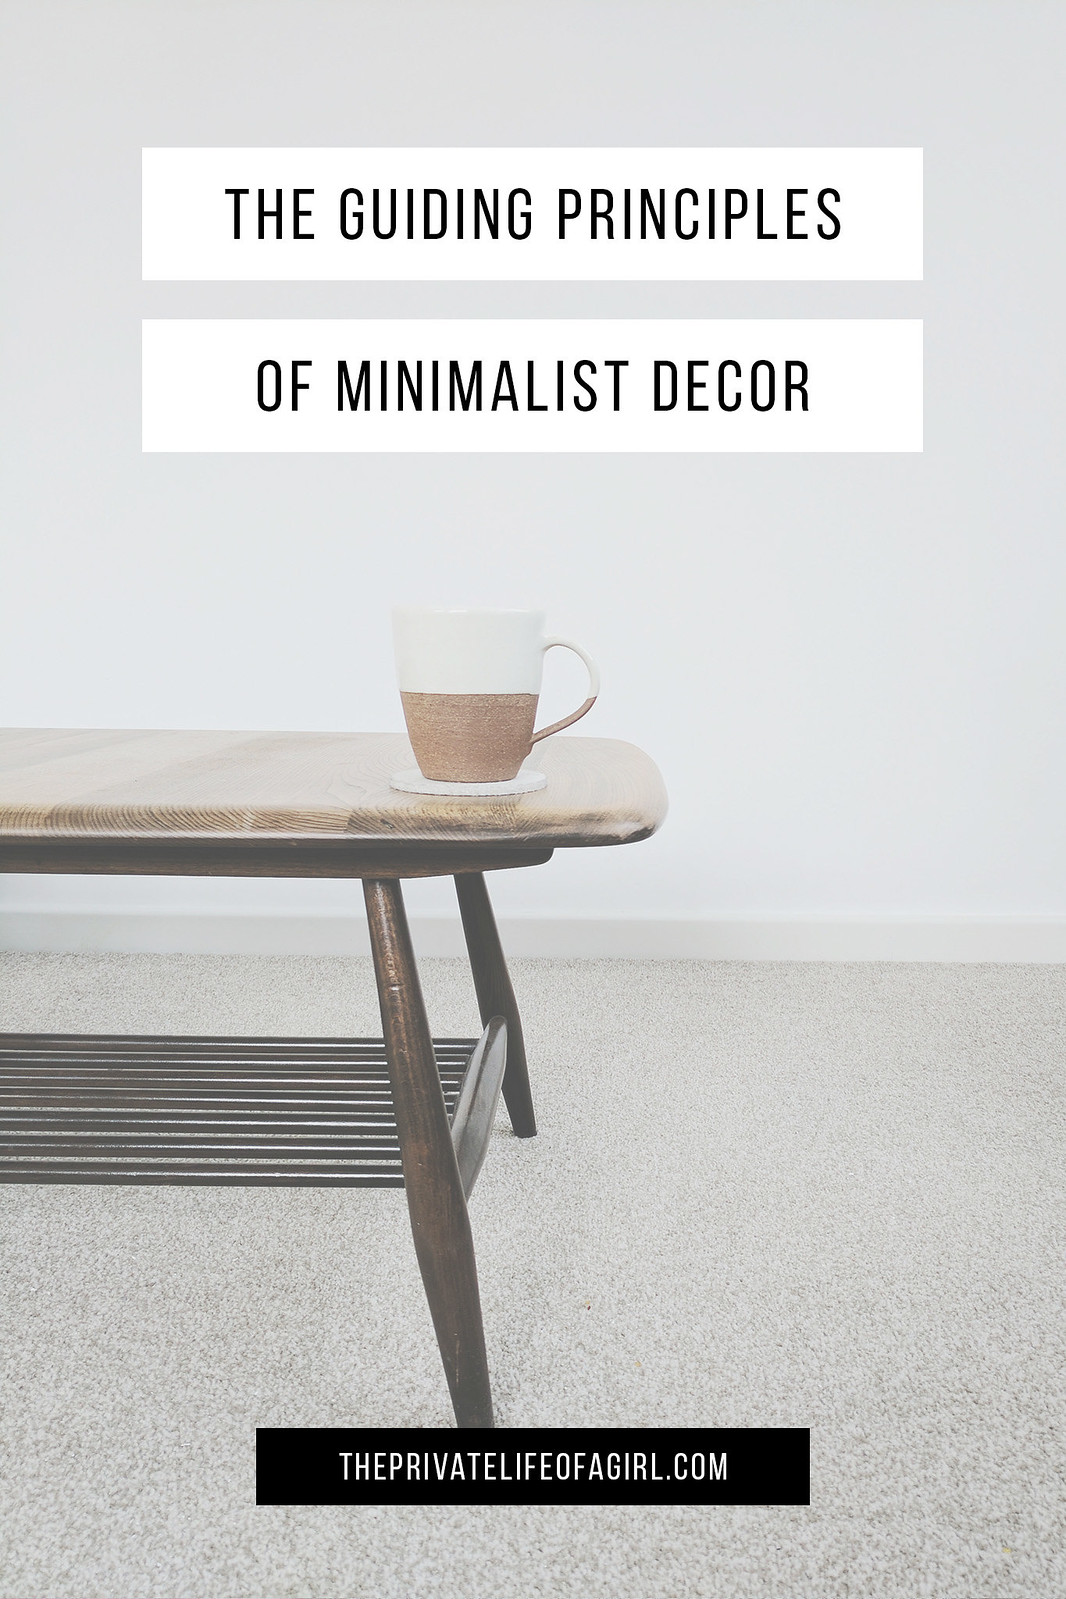 The 3 Guiding Principles of Minimalist Home Decor